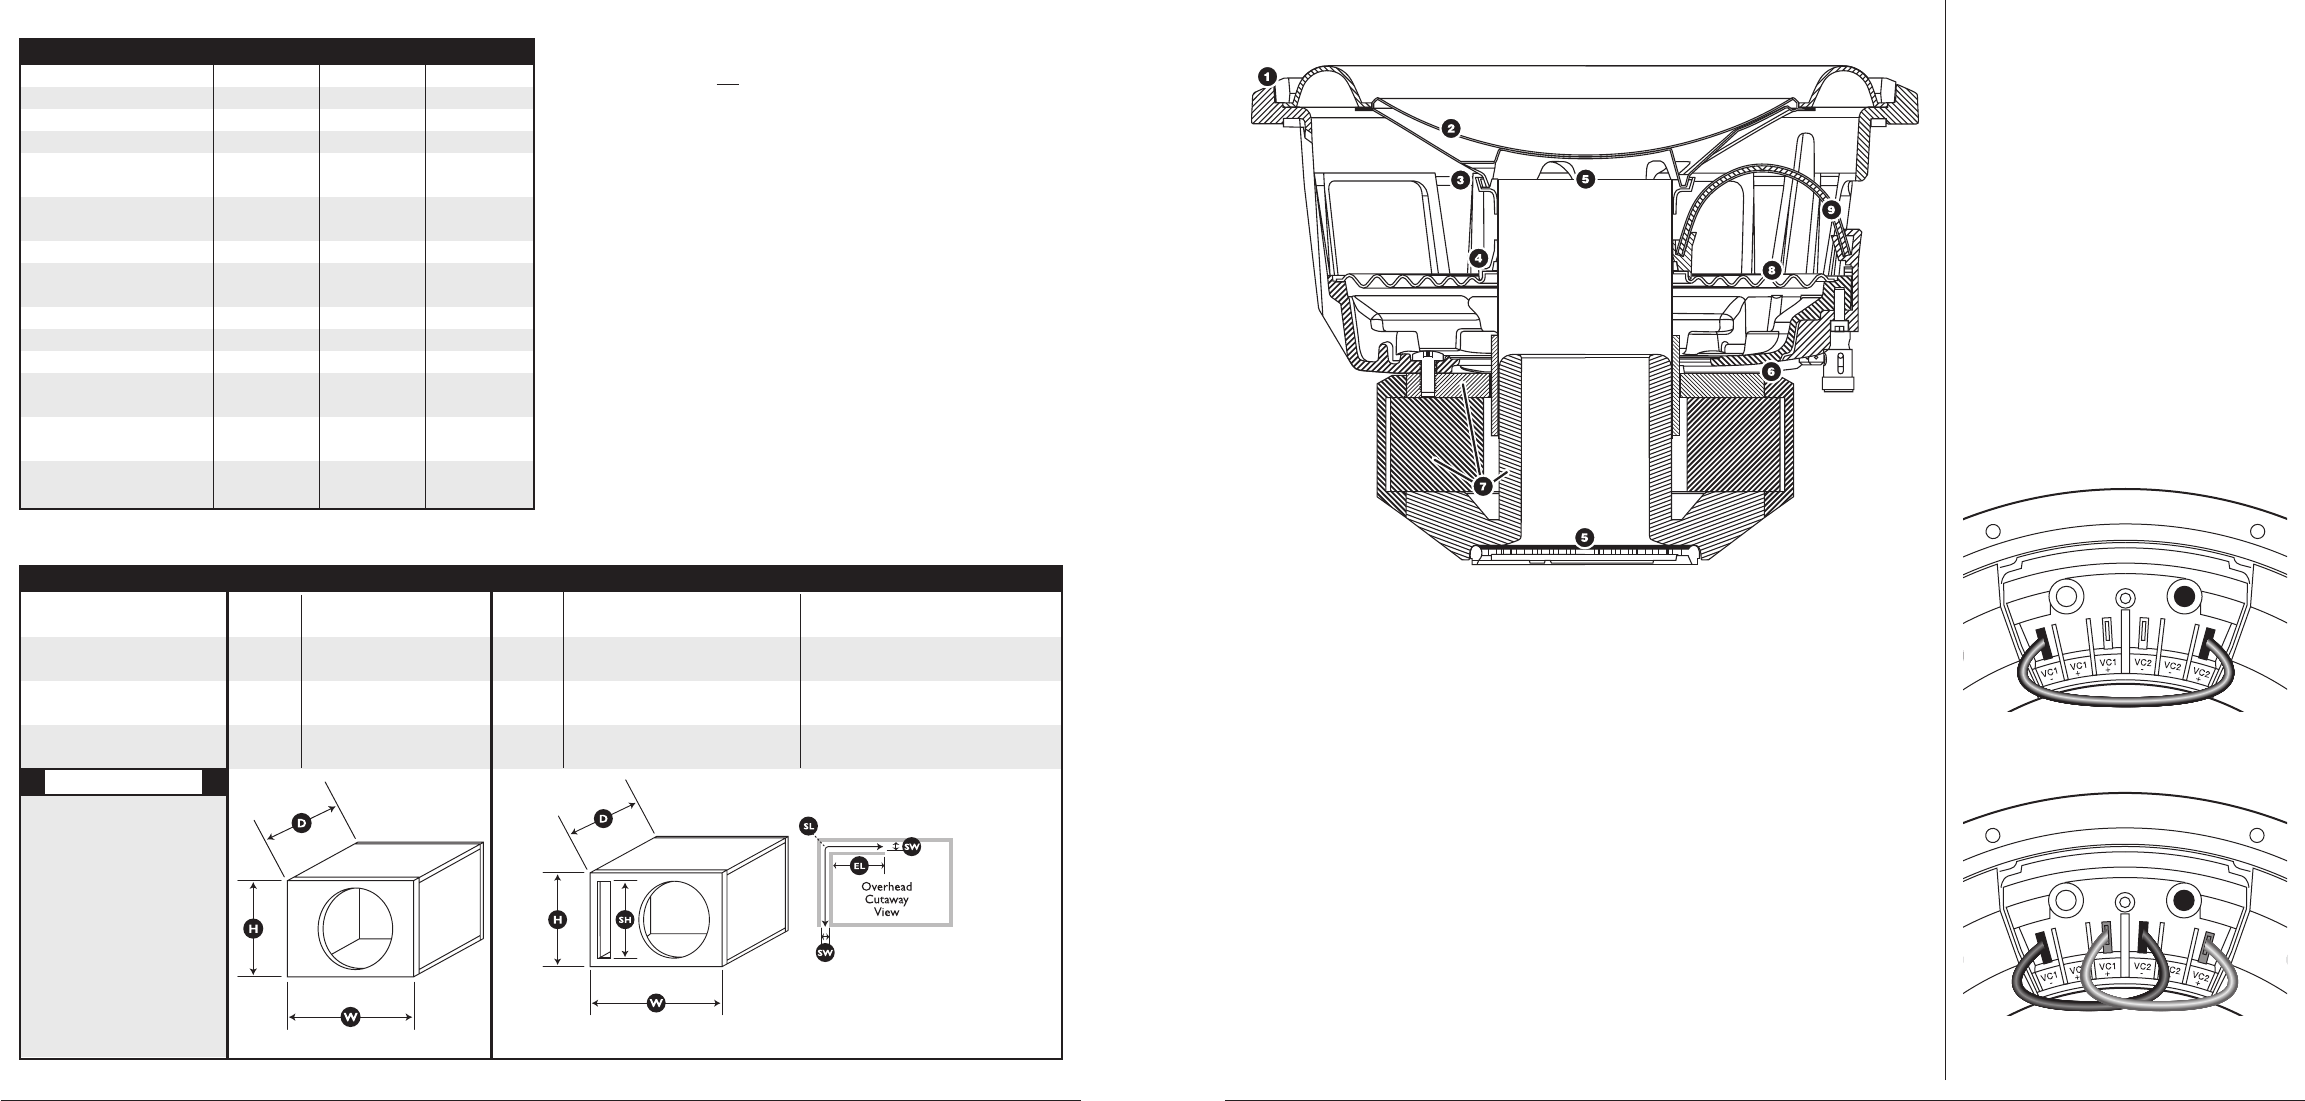 596afd09 064e 6f84 6d6b 3c5d40f0eb41 bg2 page 2 of jl audio speaker 10w6v2 d4 user guide manualsonline com jl audio w6v2 wiring diagram at metegol.co